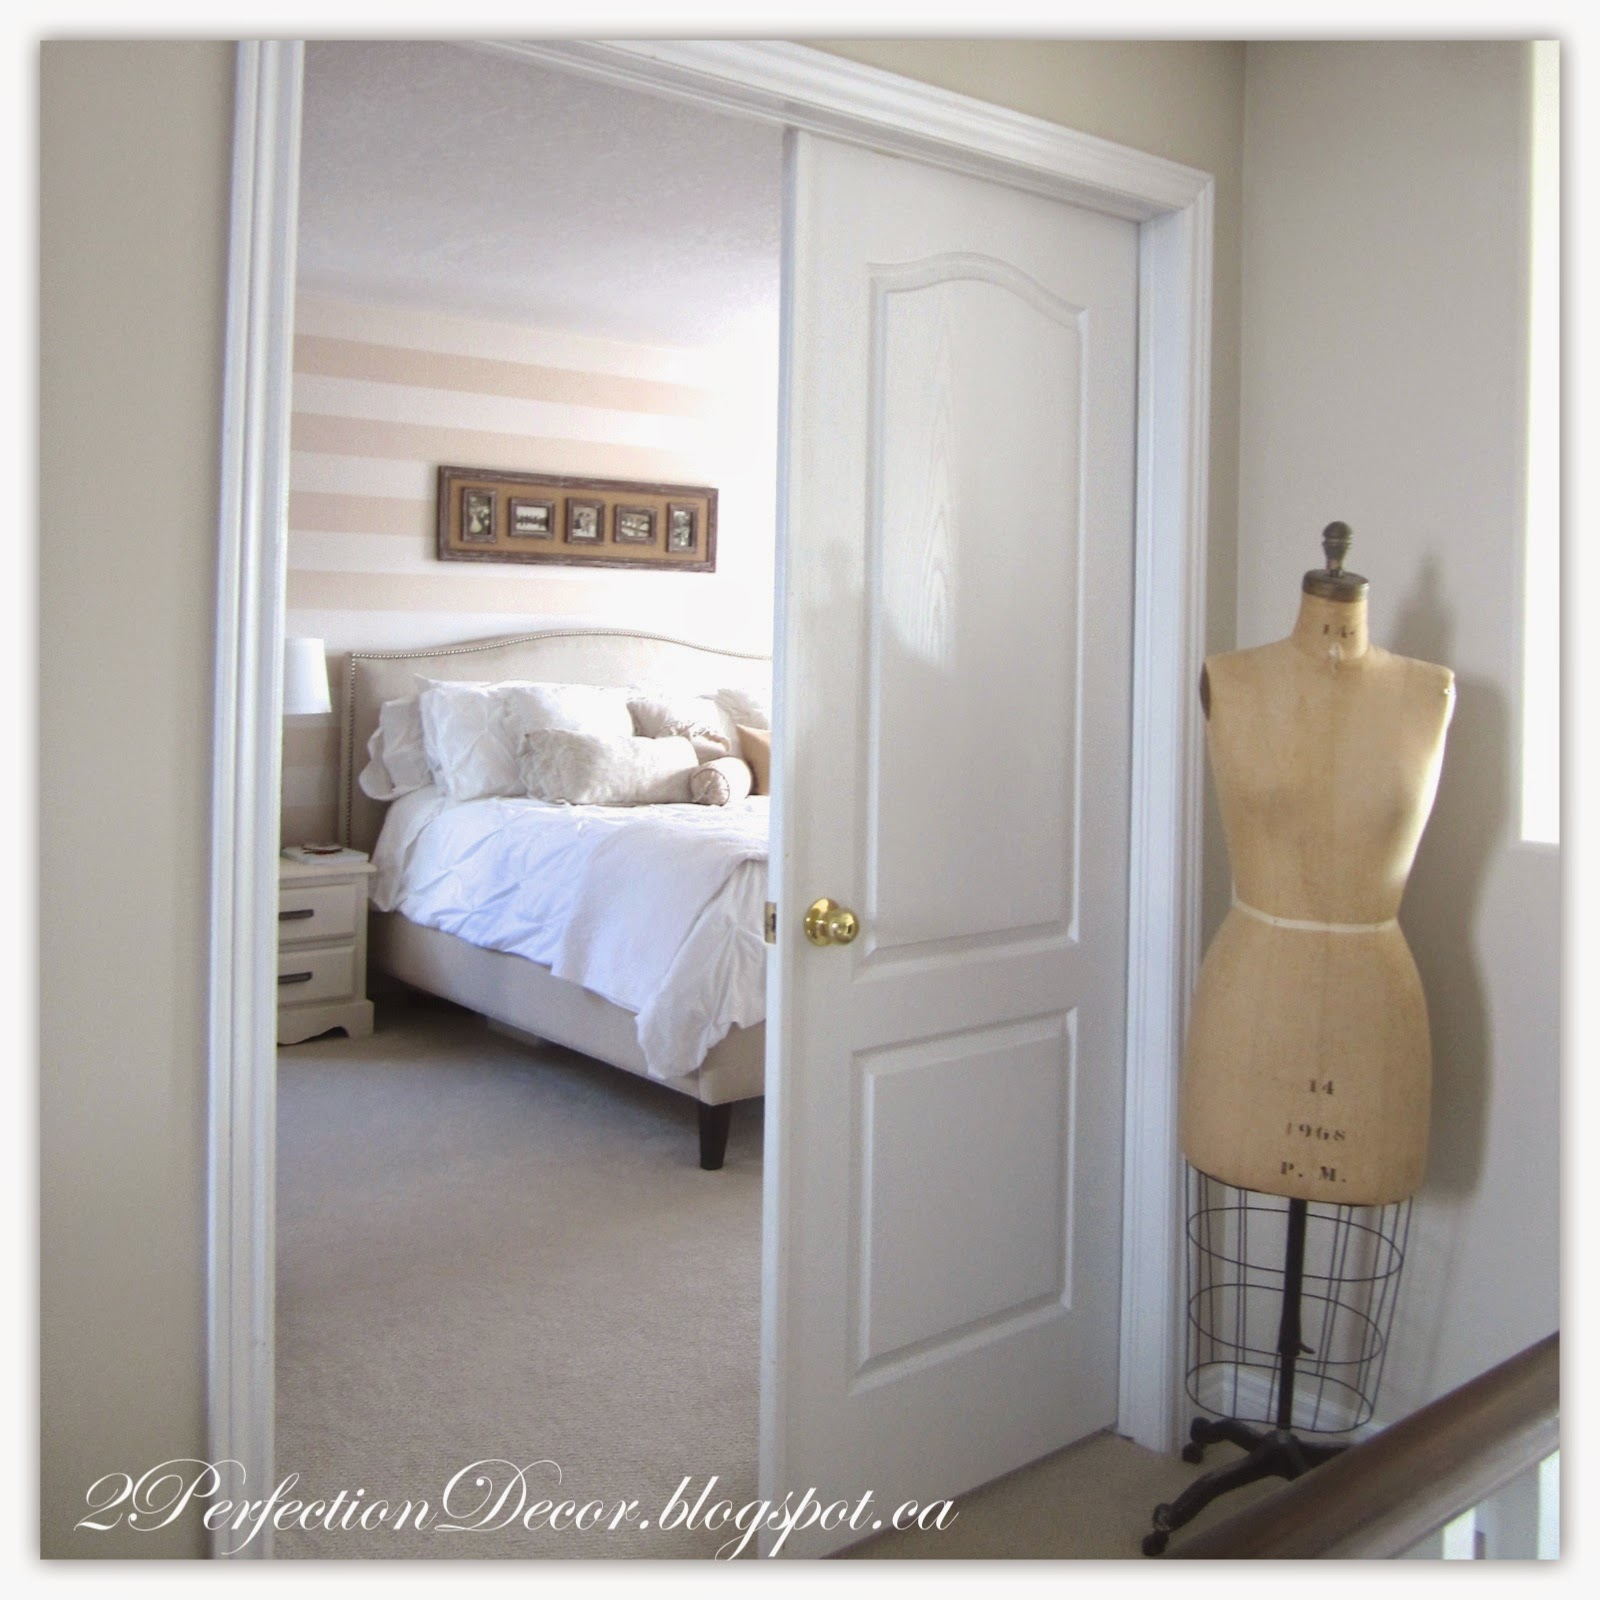 Top 30 Masculine Bedroom Part 2: 2Perfection Decor: Master Bedroom Full Reveal